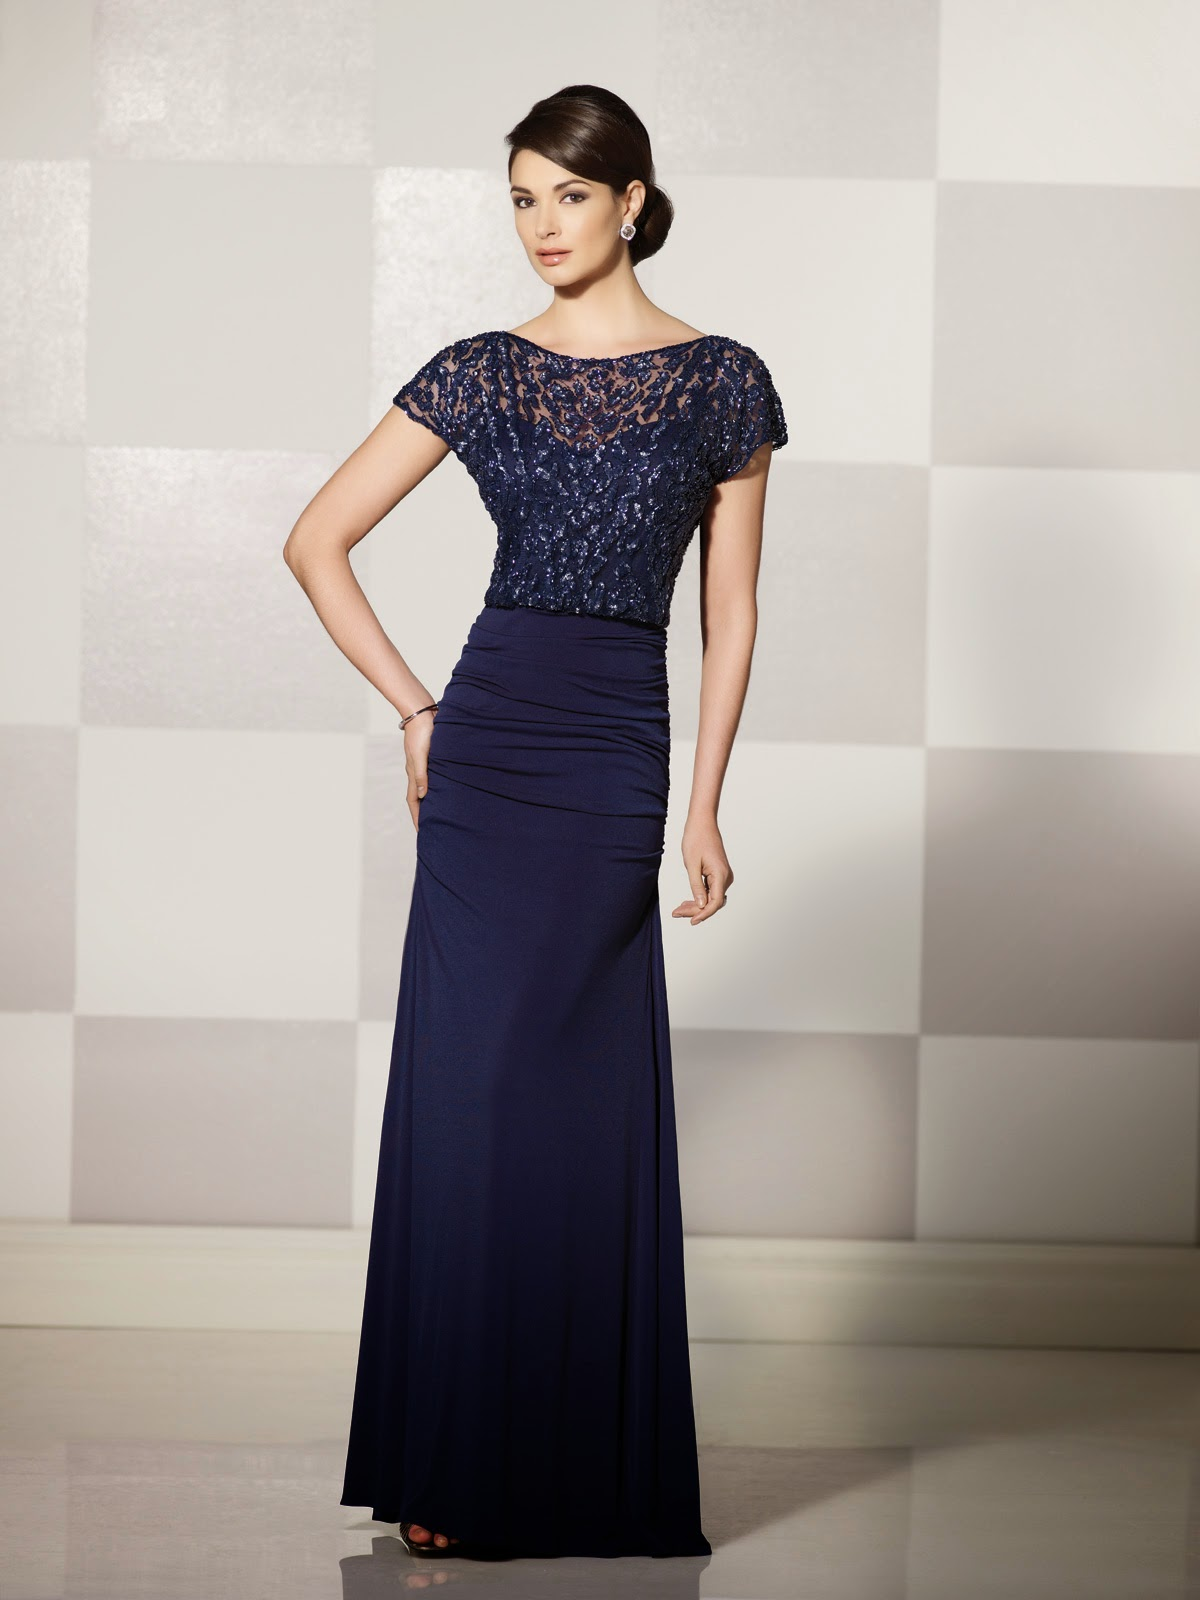 2014 Fall Mother Of Bride Dresses A line gown along with